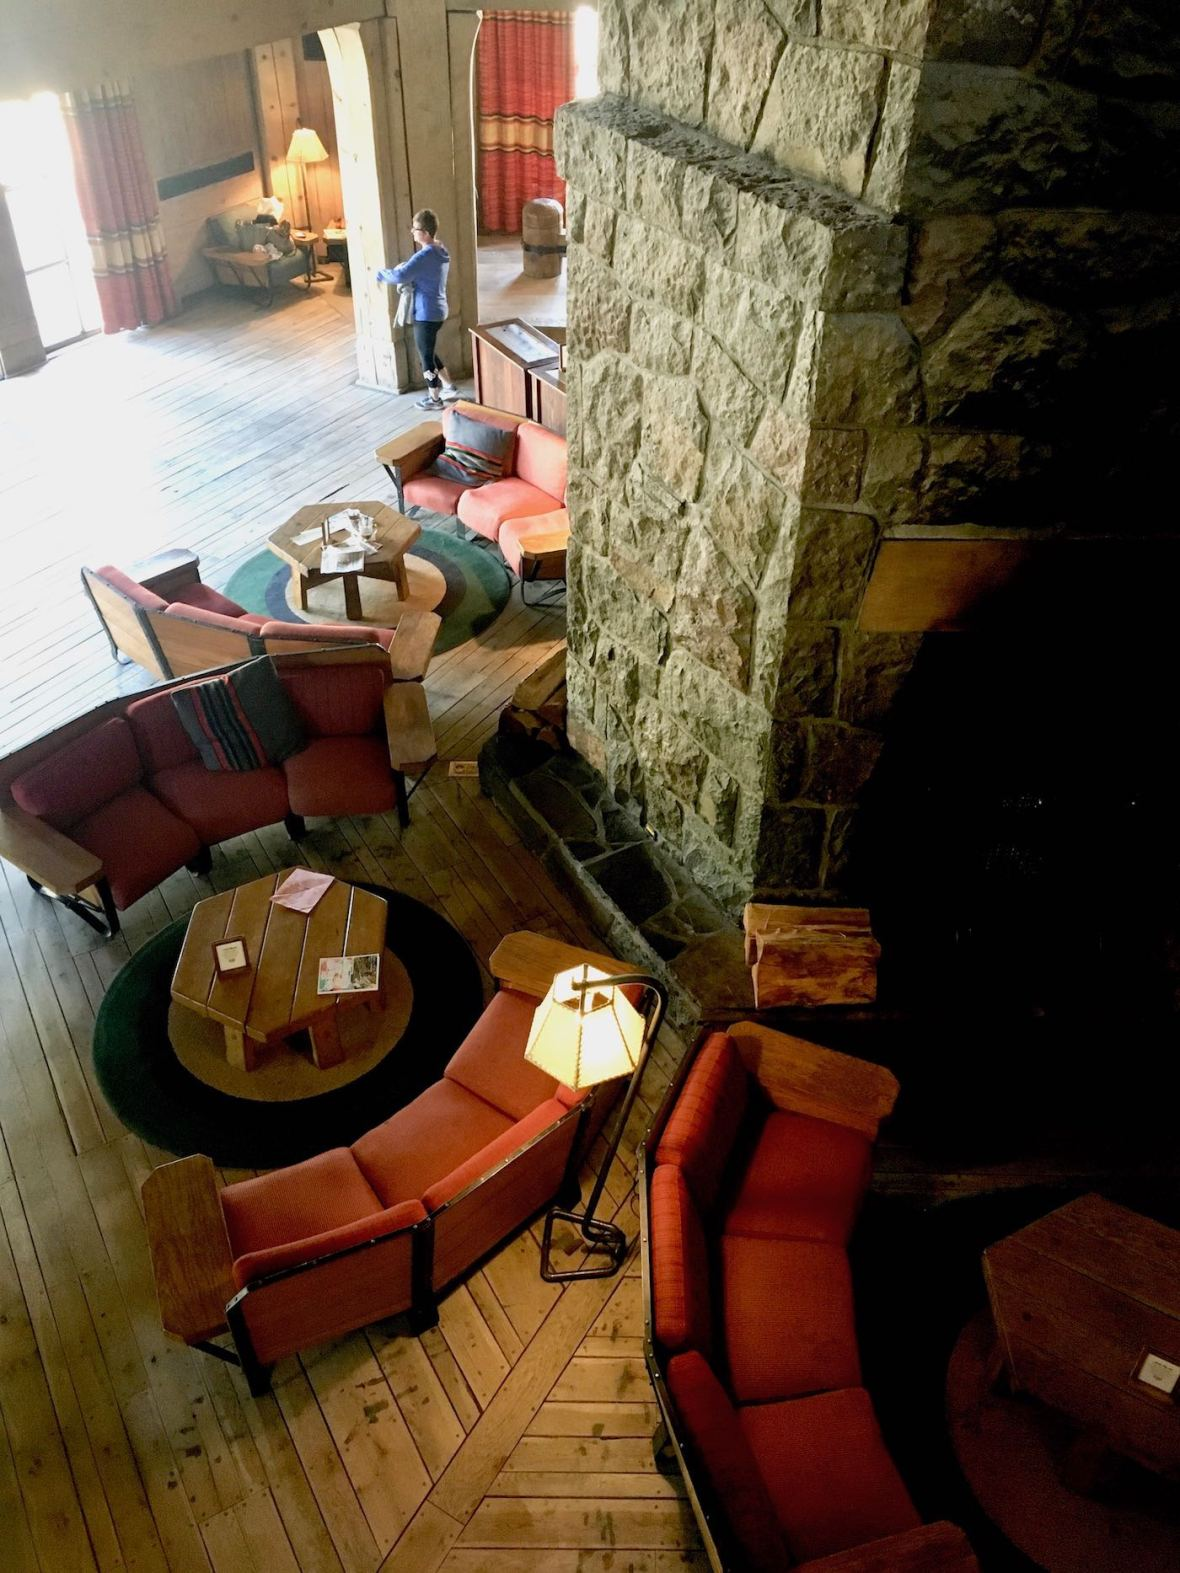 Apres-Ski Cozy conversation areas at Timberline Lodge in Mt. Hood, Oregon